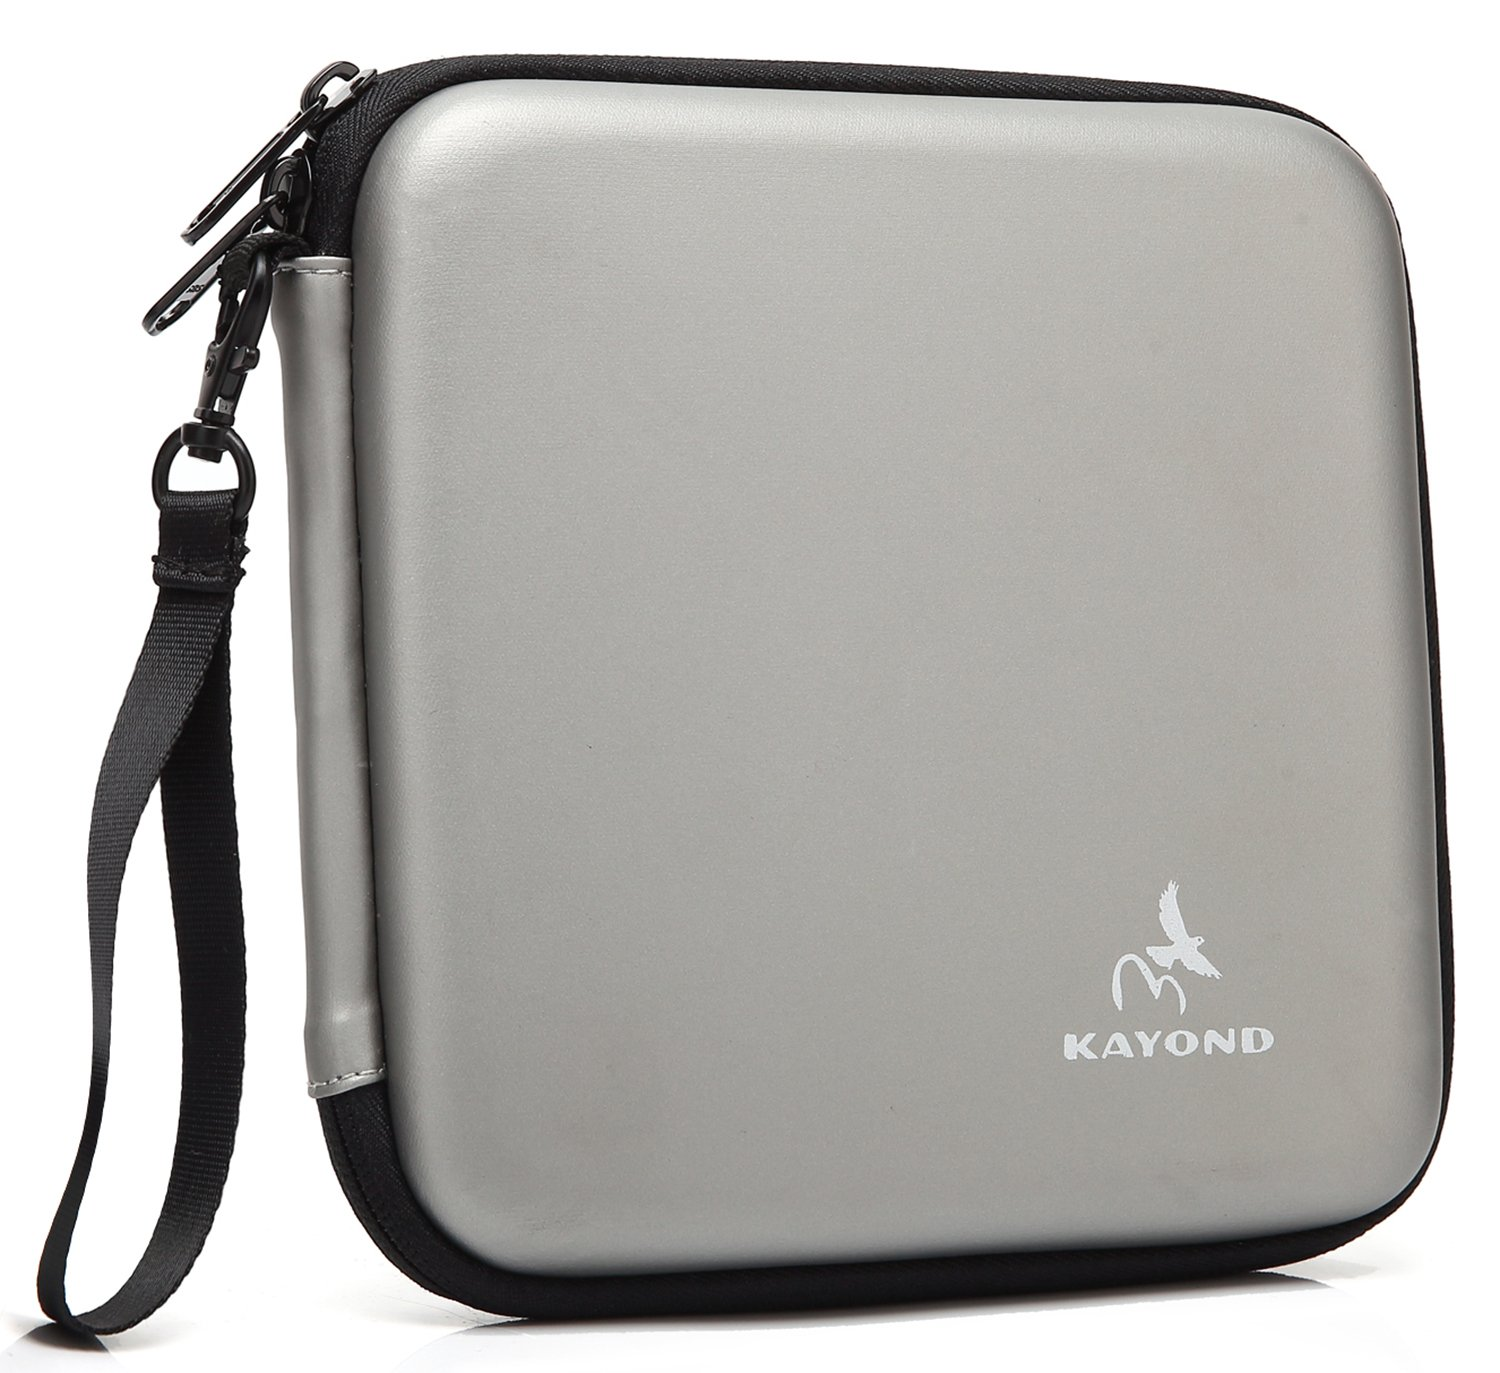 KAYOND Portable Hard Carrying Travel Storage Case for External USB, DVD, CD, Blu-ray Rewriter/Writer and Optical Drives (Gray) by kayond